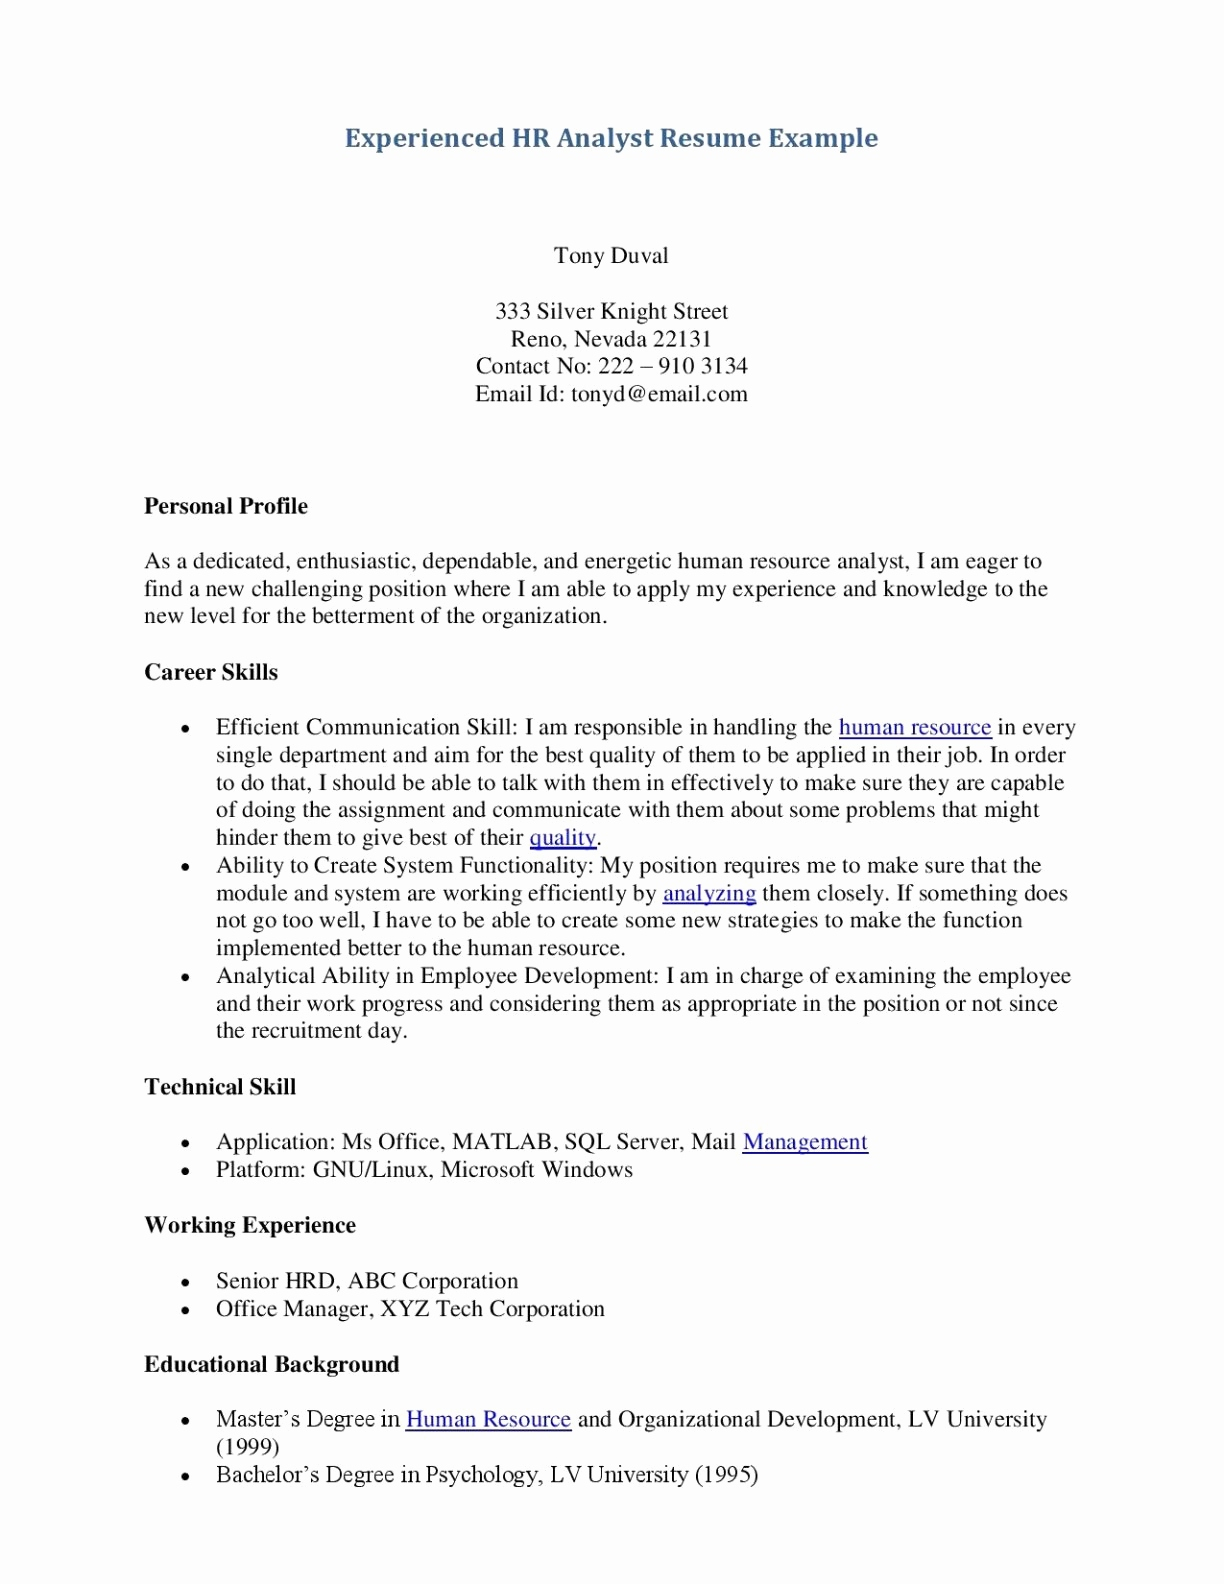 Sales Cover Letter Template Free - Elegant Sales Cover Letter Template